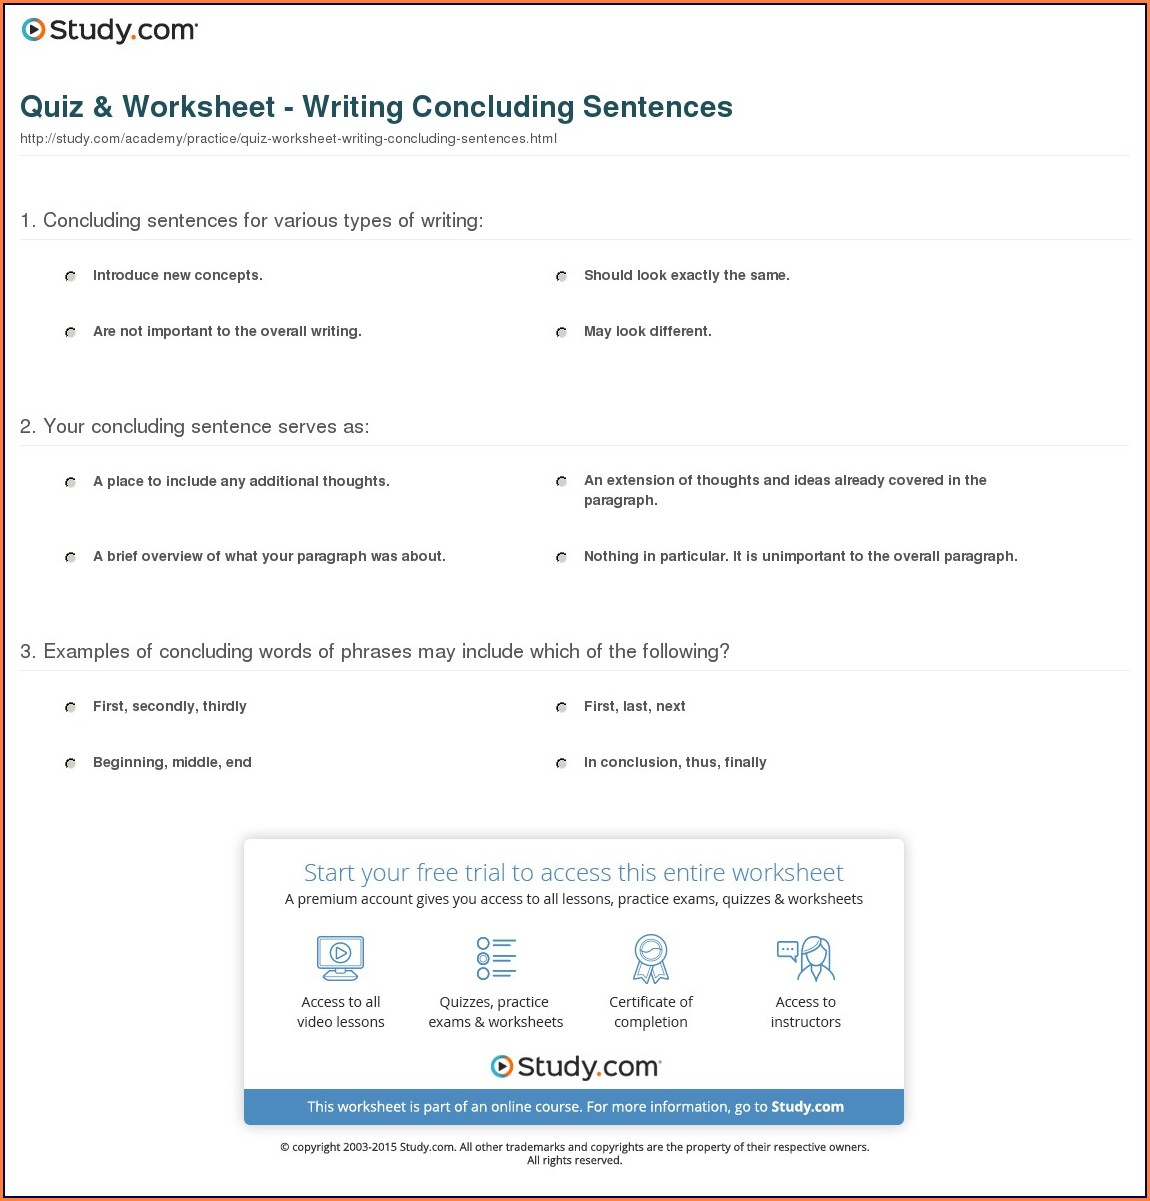 Writing Concluding Sentences Worksheet